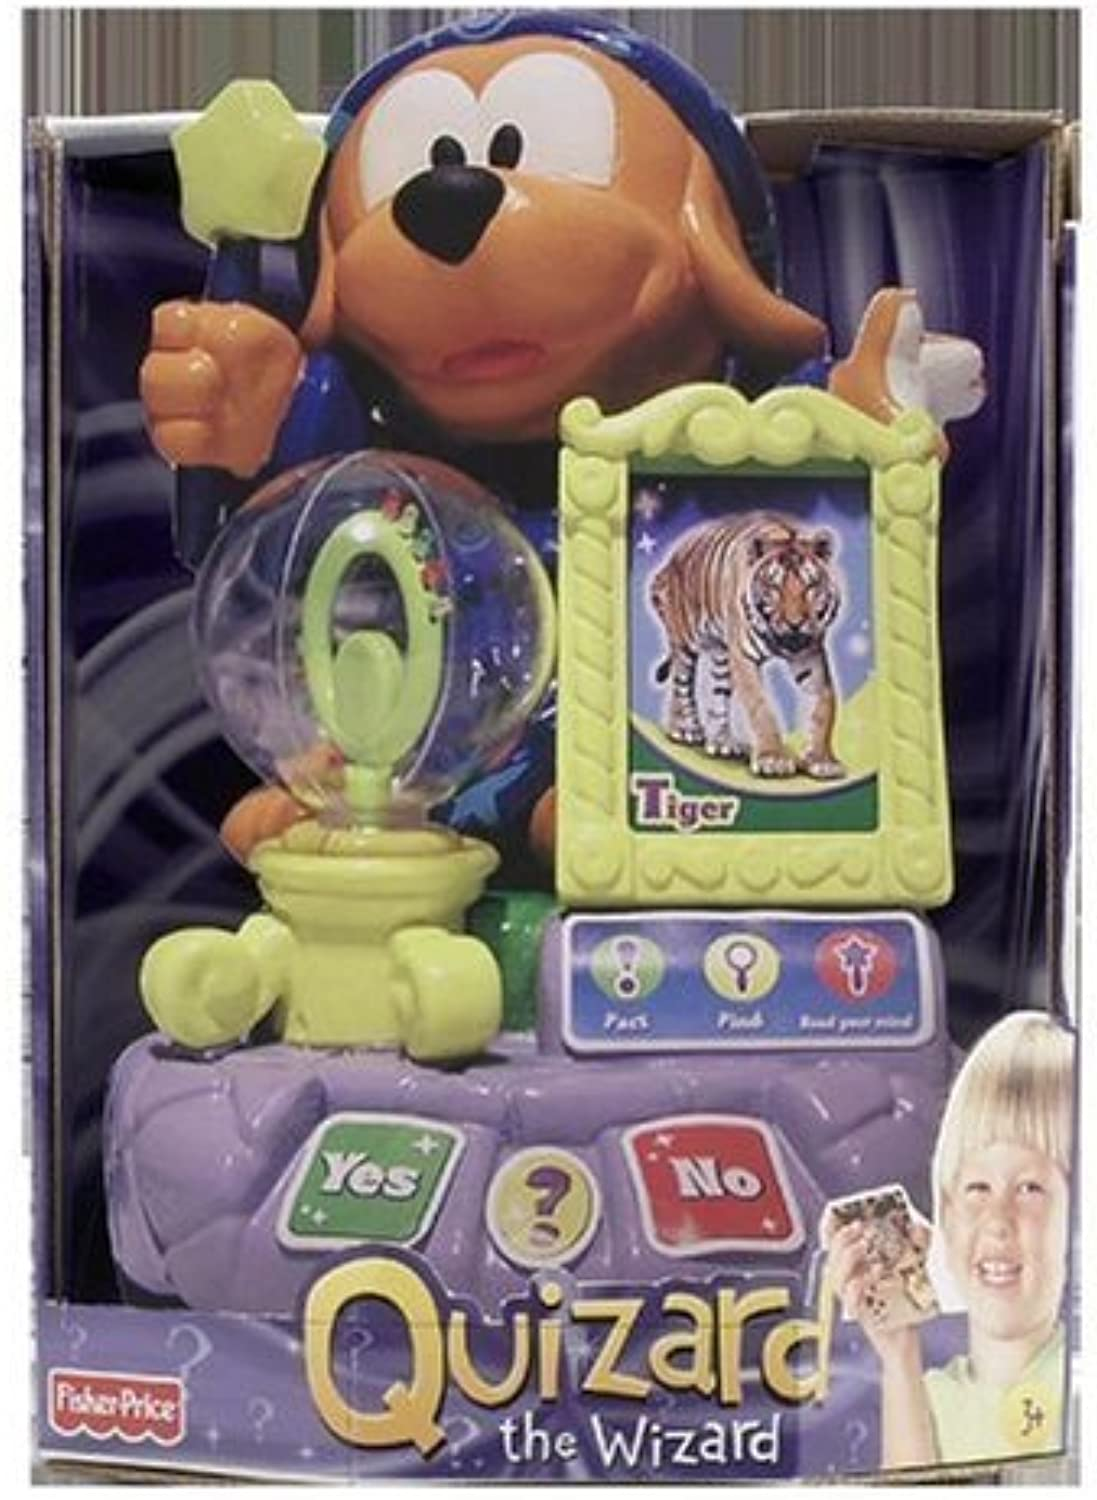 Quizard the Learning Wizard by Fisher-Price